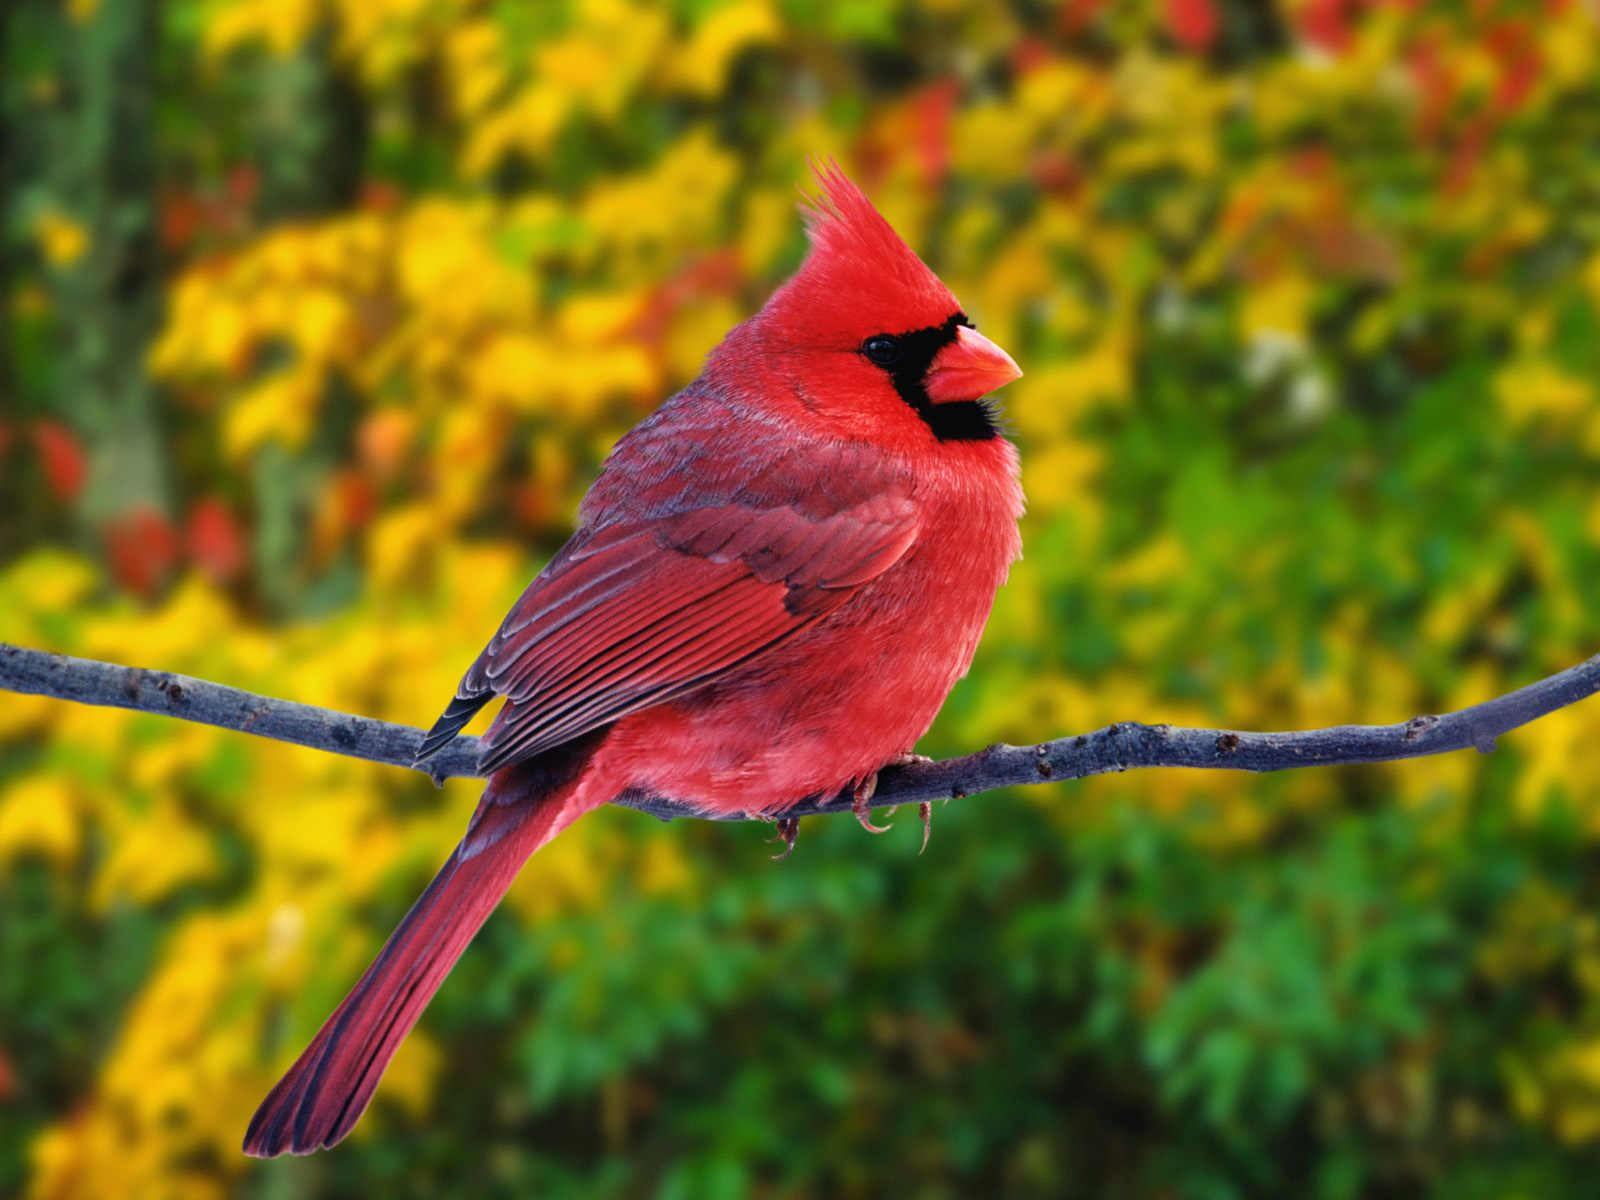 High-resolution pictures of birds 2403